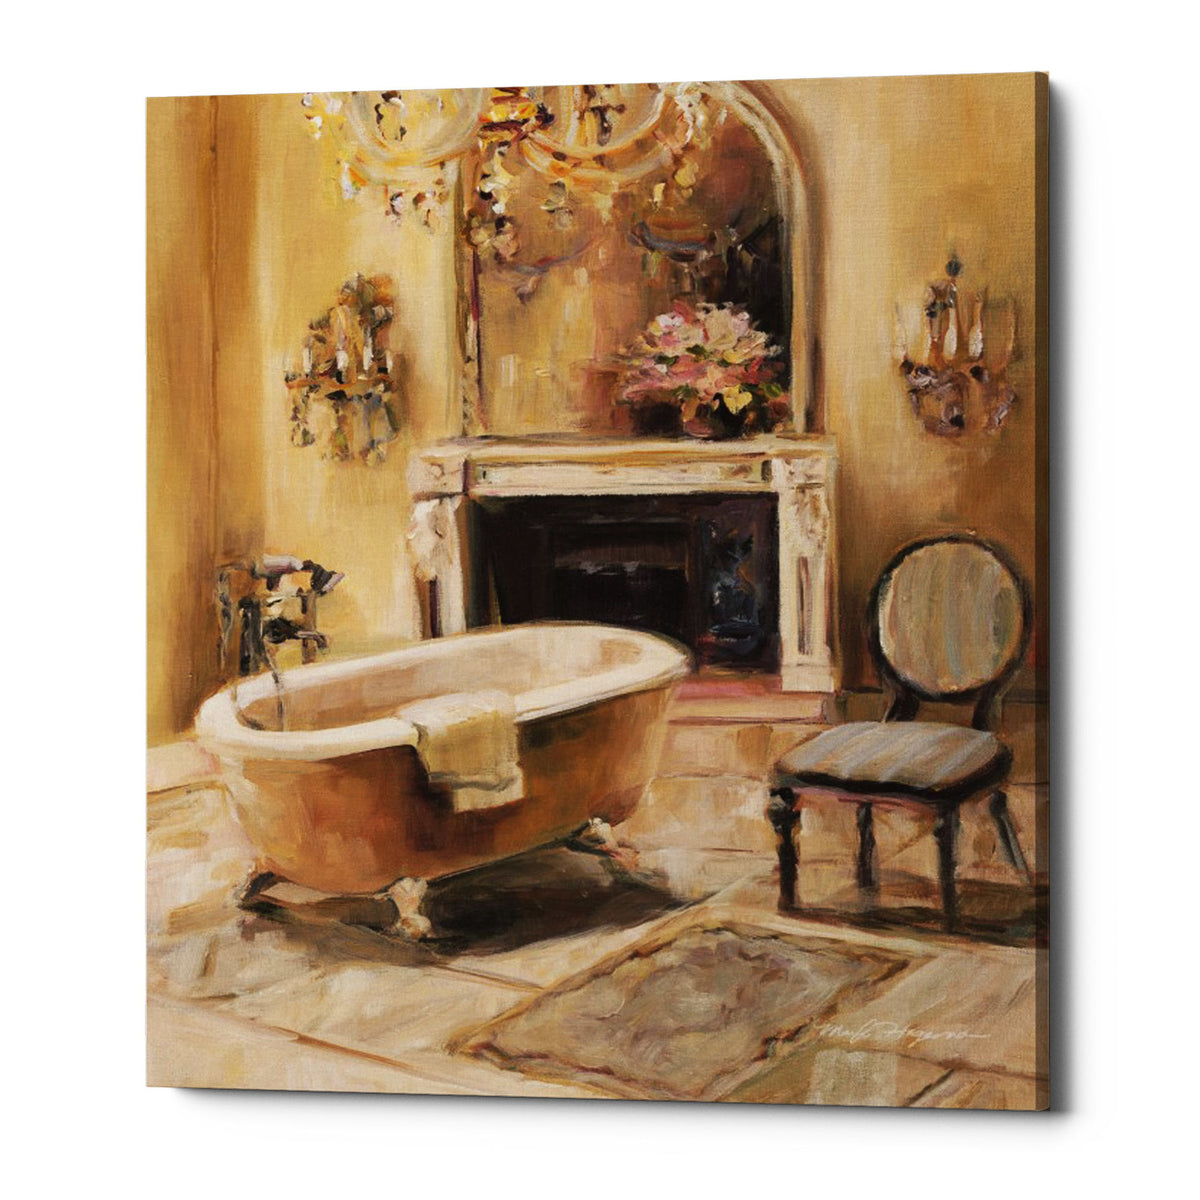 "Epic Graffiti ""French Bath I"" by Marilyn Hageman, Giclee Canvas Wall Art, 16""x18"""